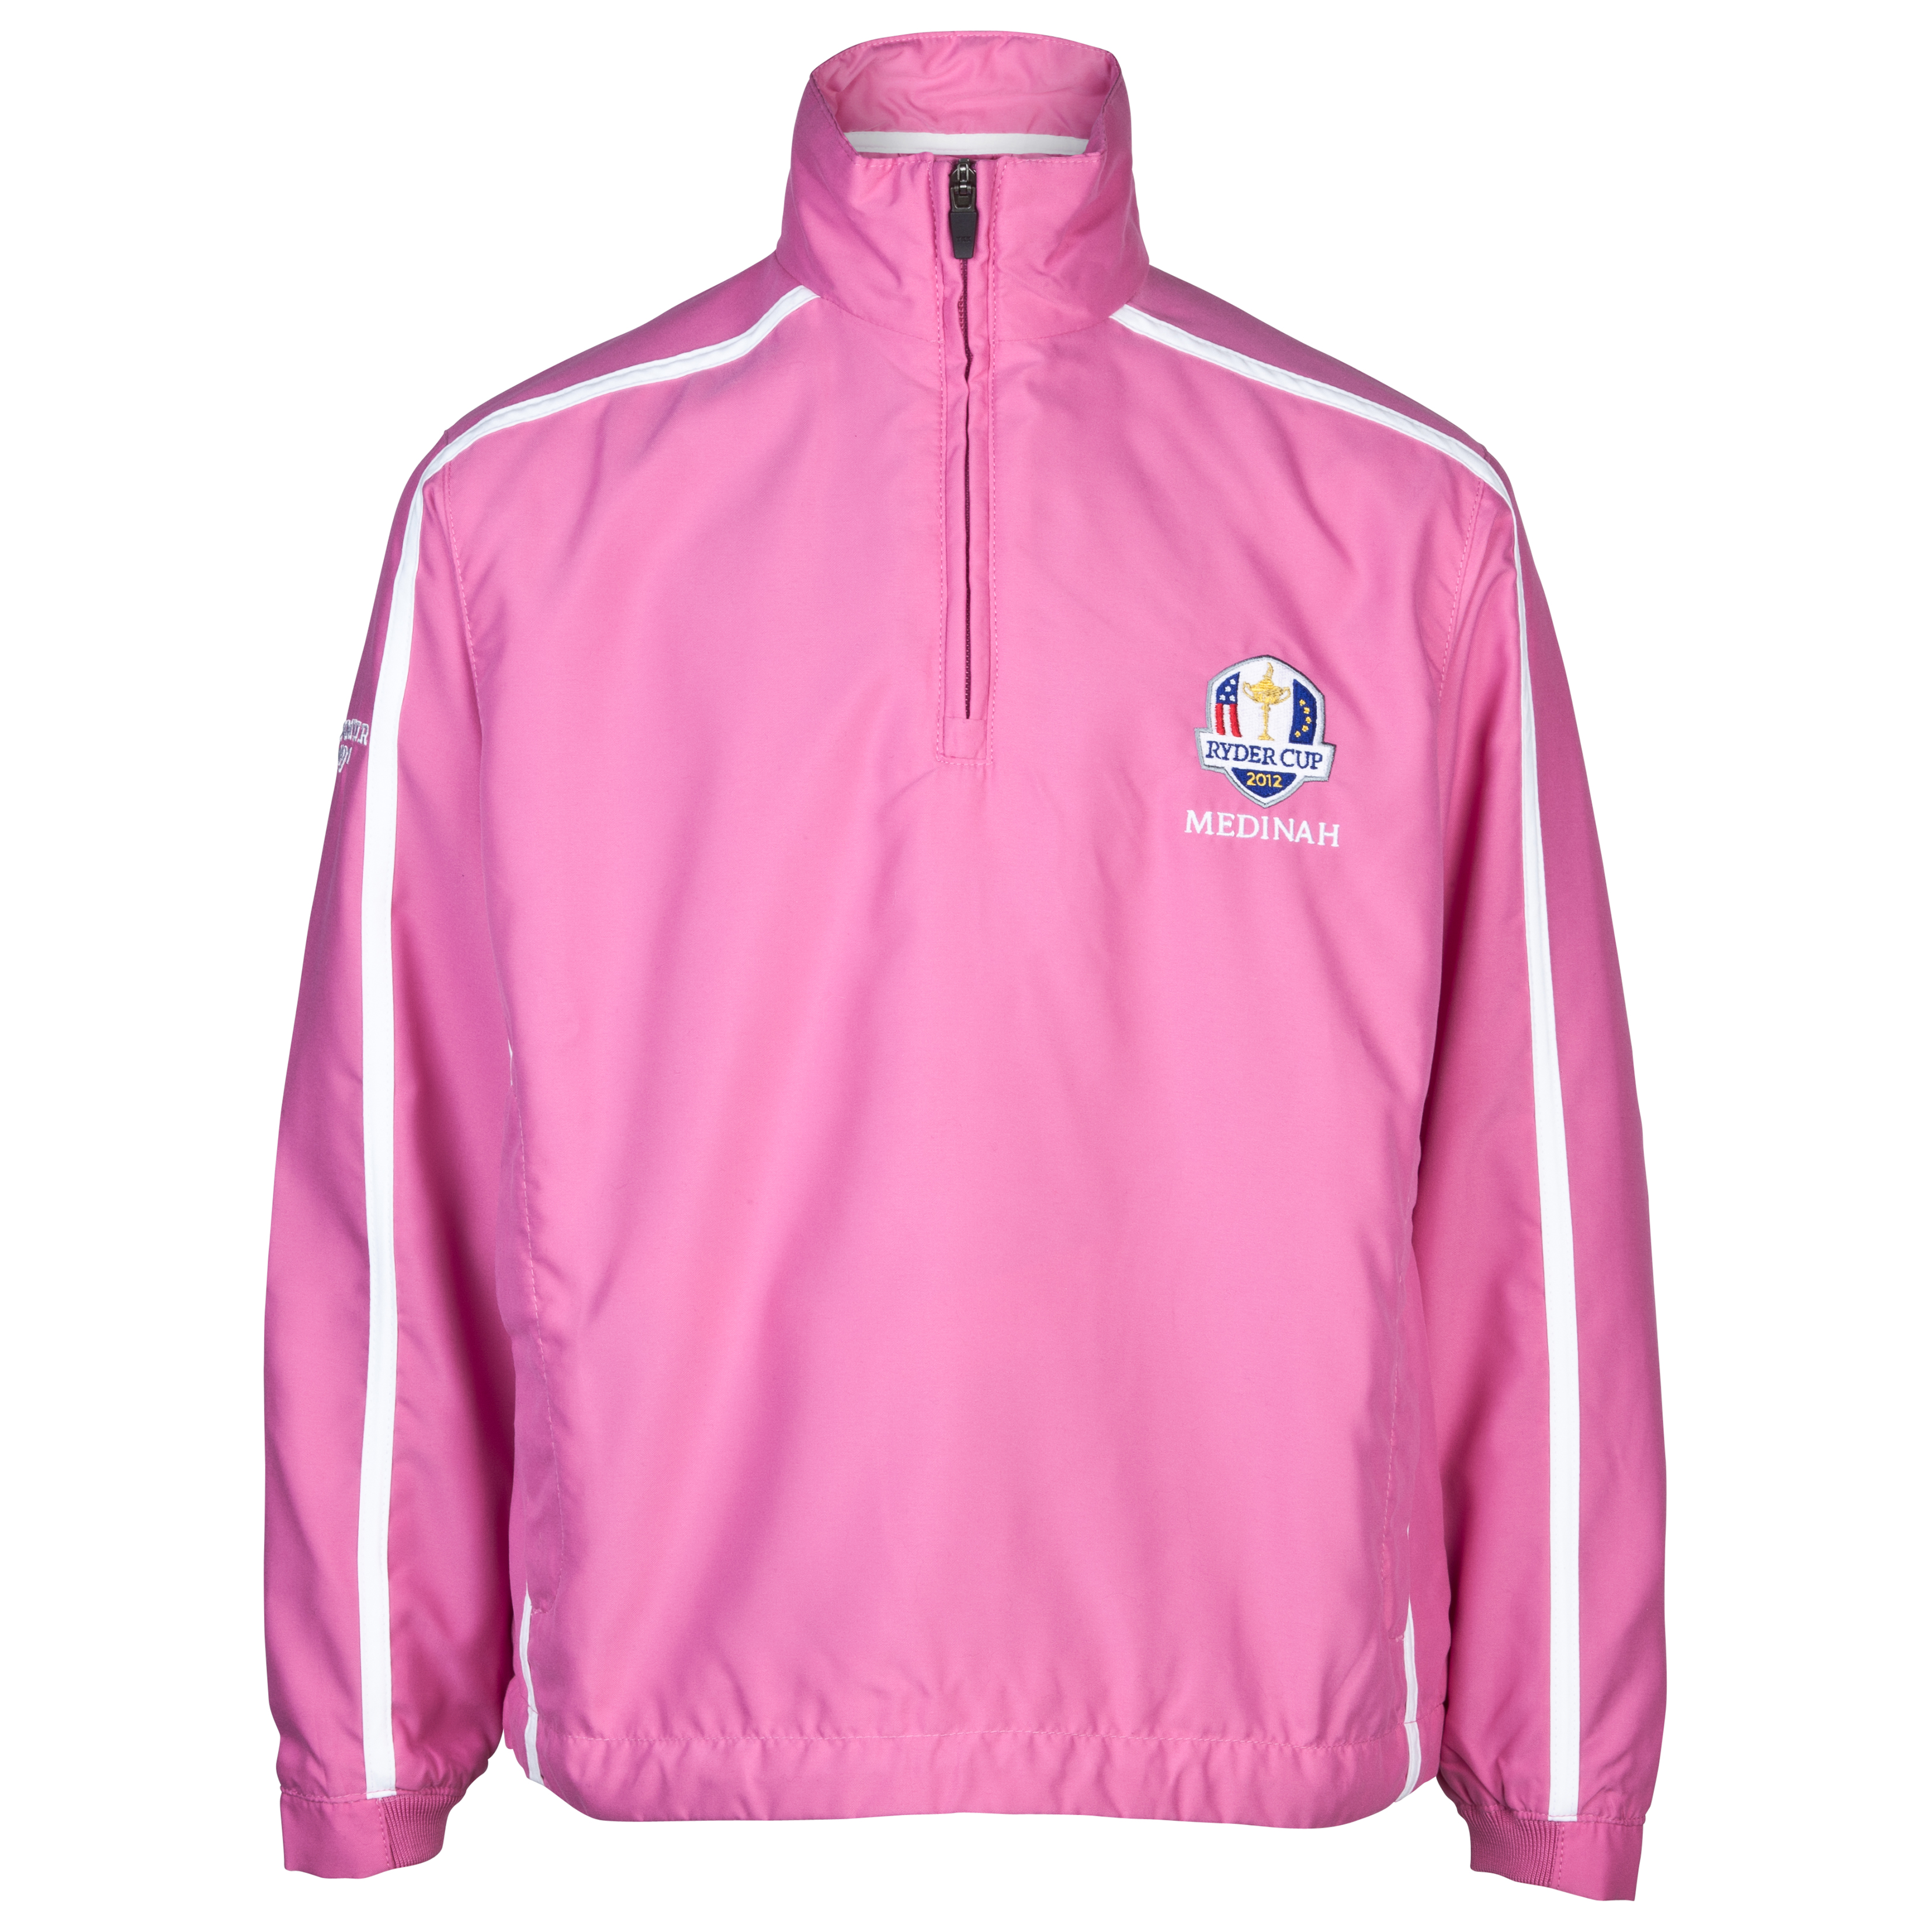 The Ryder Cup Medinah 2012 Glenmuir Kendal Storm Bloc Windshirt - Hot Pink/White - Unisex Junior